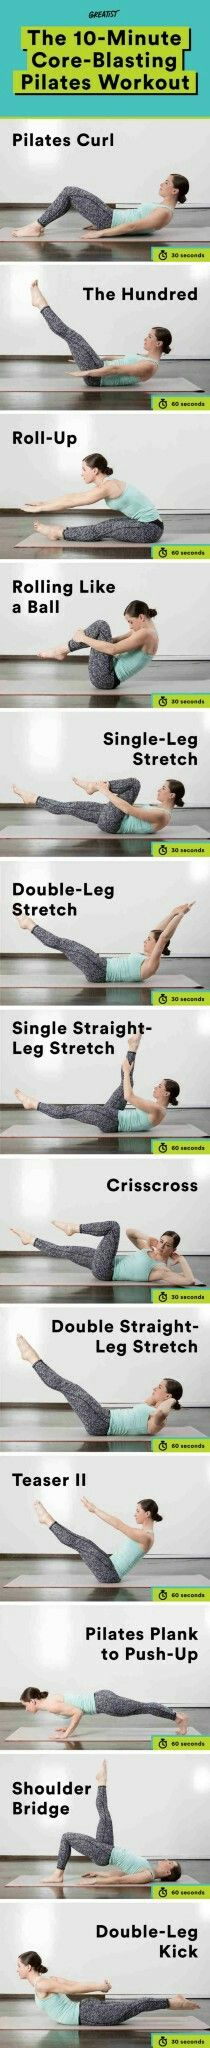 Pilates stomach routine http://whymattress.com/the-ultimate-yoga-guide/